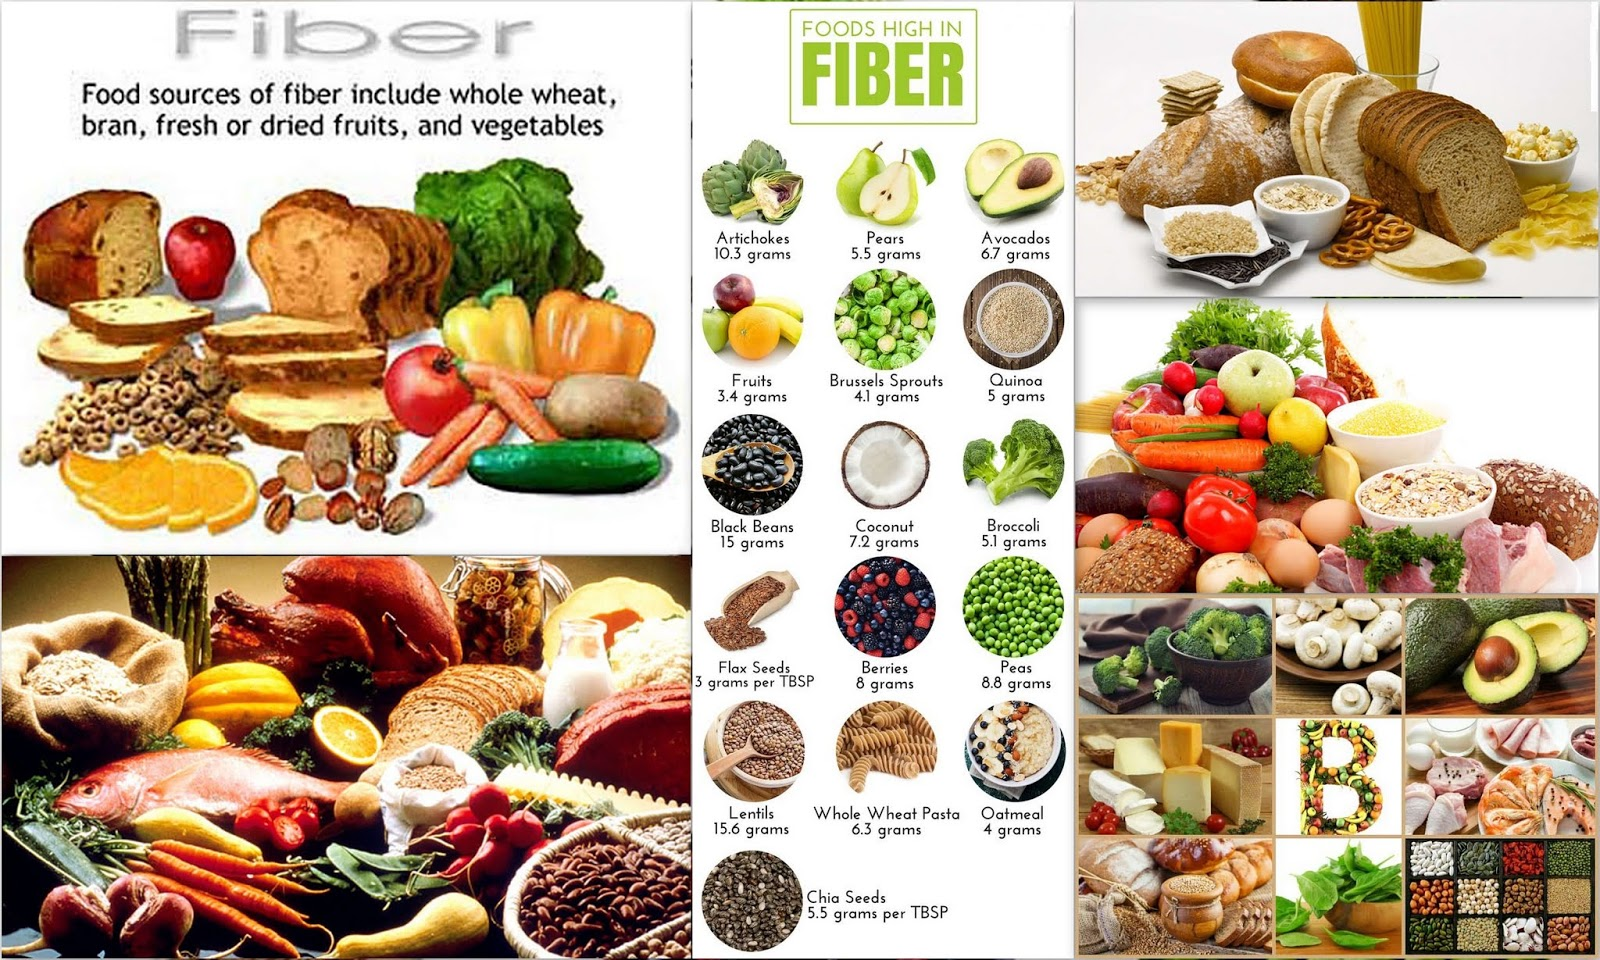 HOW FIBER KEEPS YOU HEALTHY AND AIDS WEIGHT LOSS?